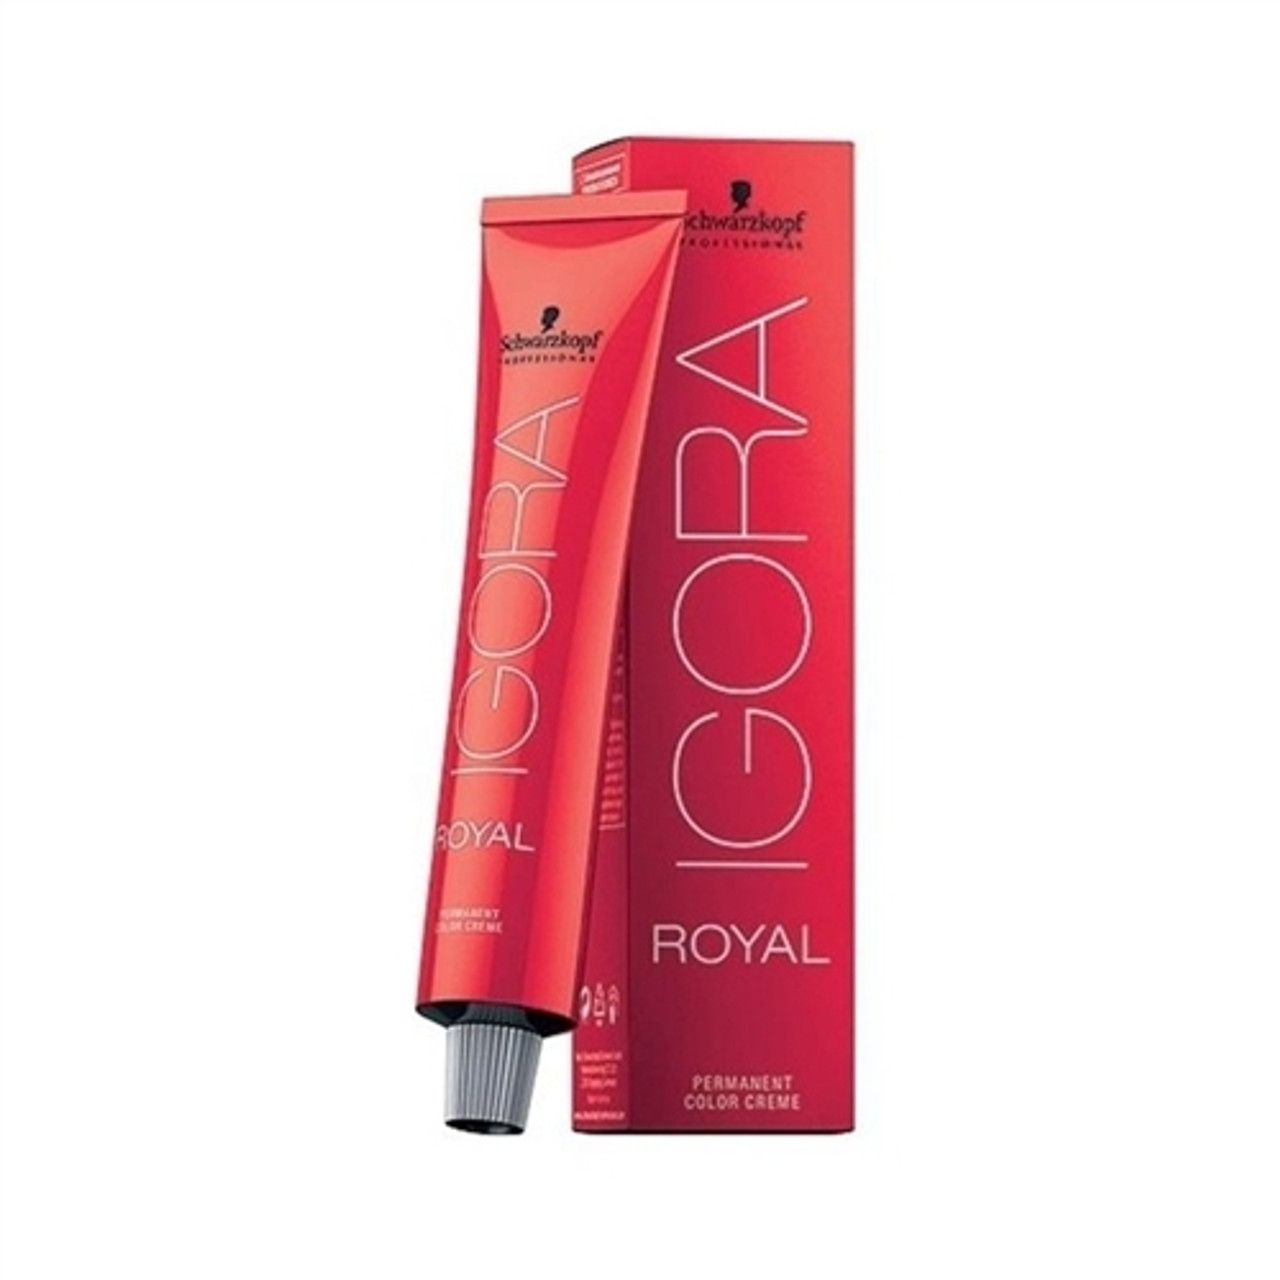 6-0  Dark blonde Schwarzkopf Igora Royal Permanent Color Creme -2.1 oz